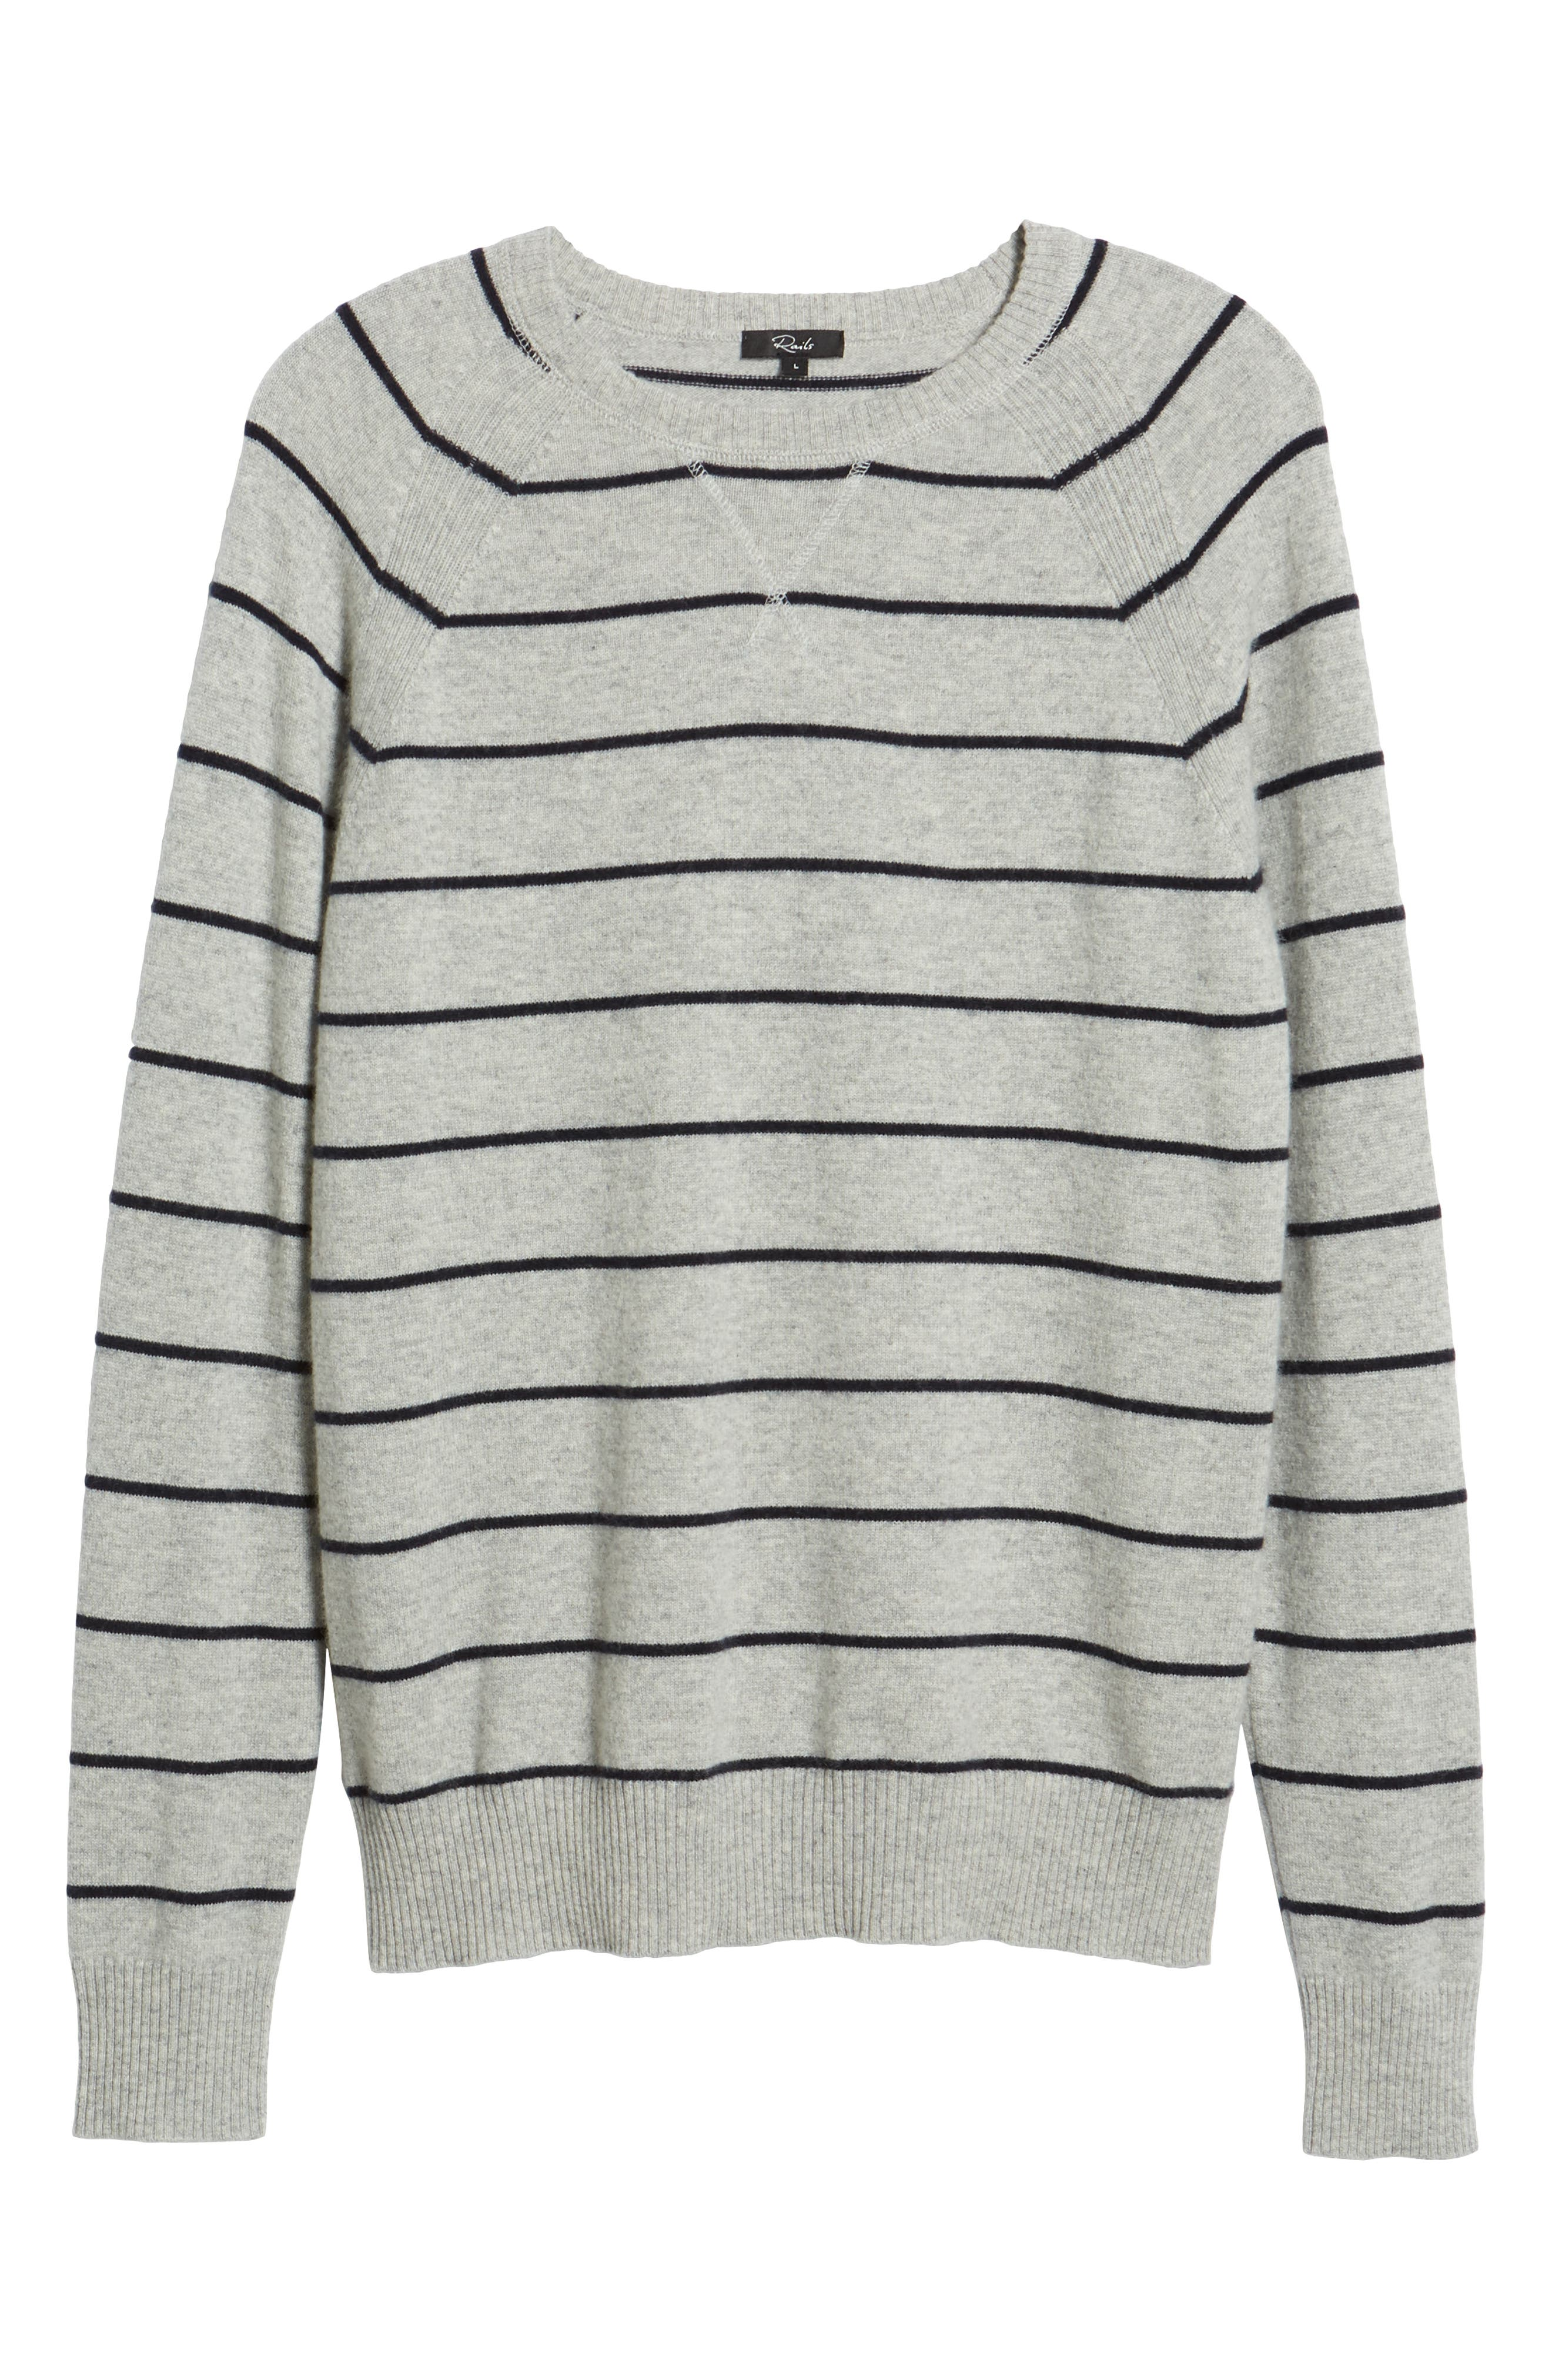 Caleb Stripe Cashmere Sweater,                             Alternate thumbnail 6, color,                             LIGHT HEATHER GREY/ NAVY